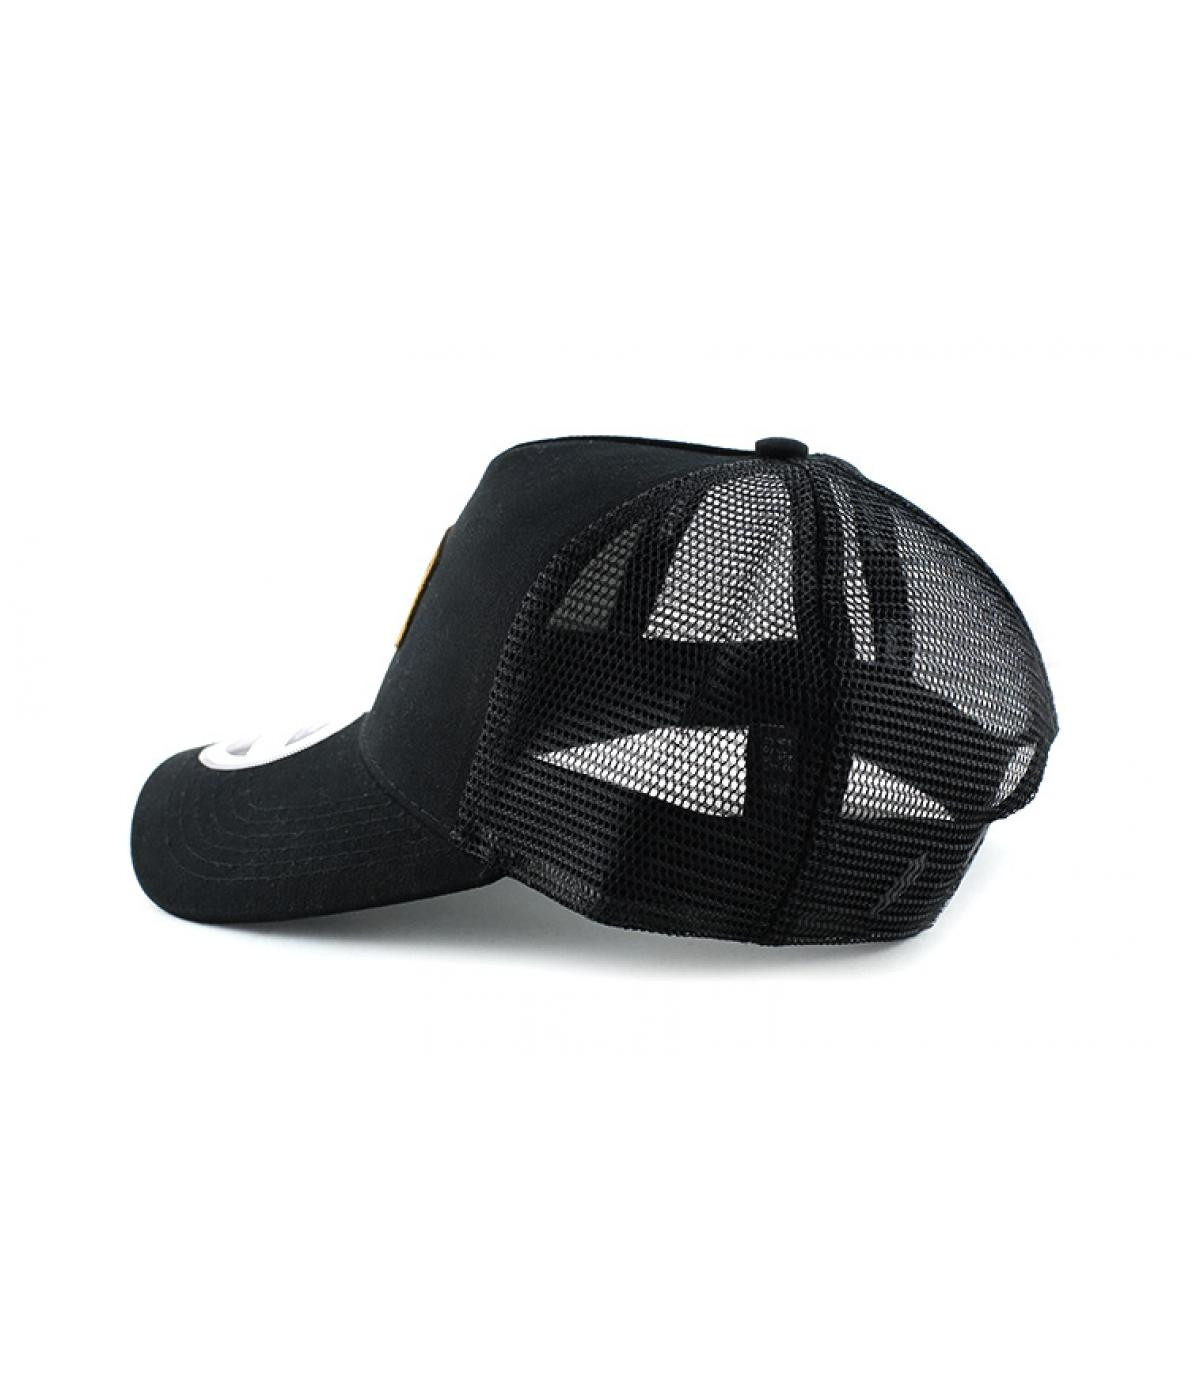 Détails Trucker First Come First Track black - image 4